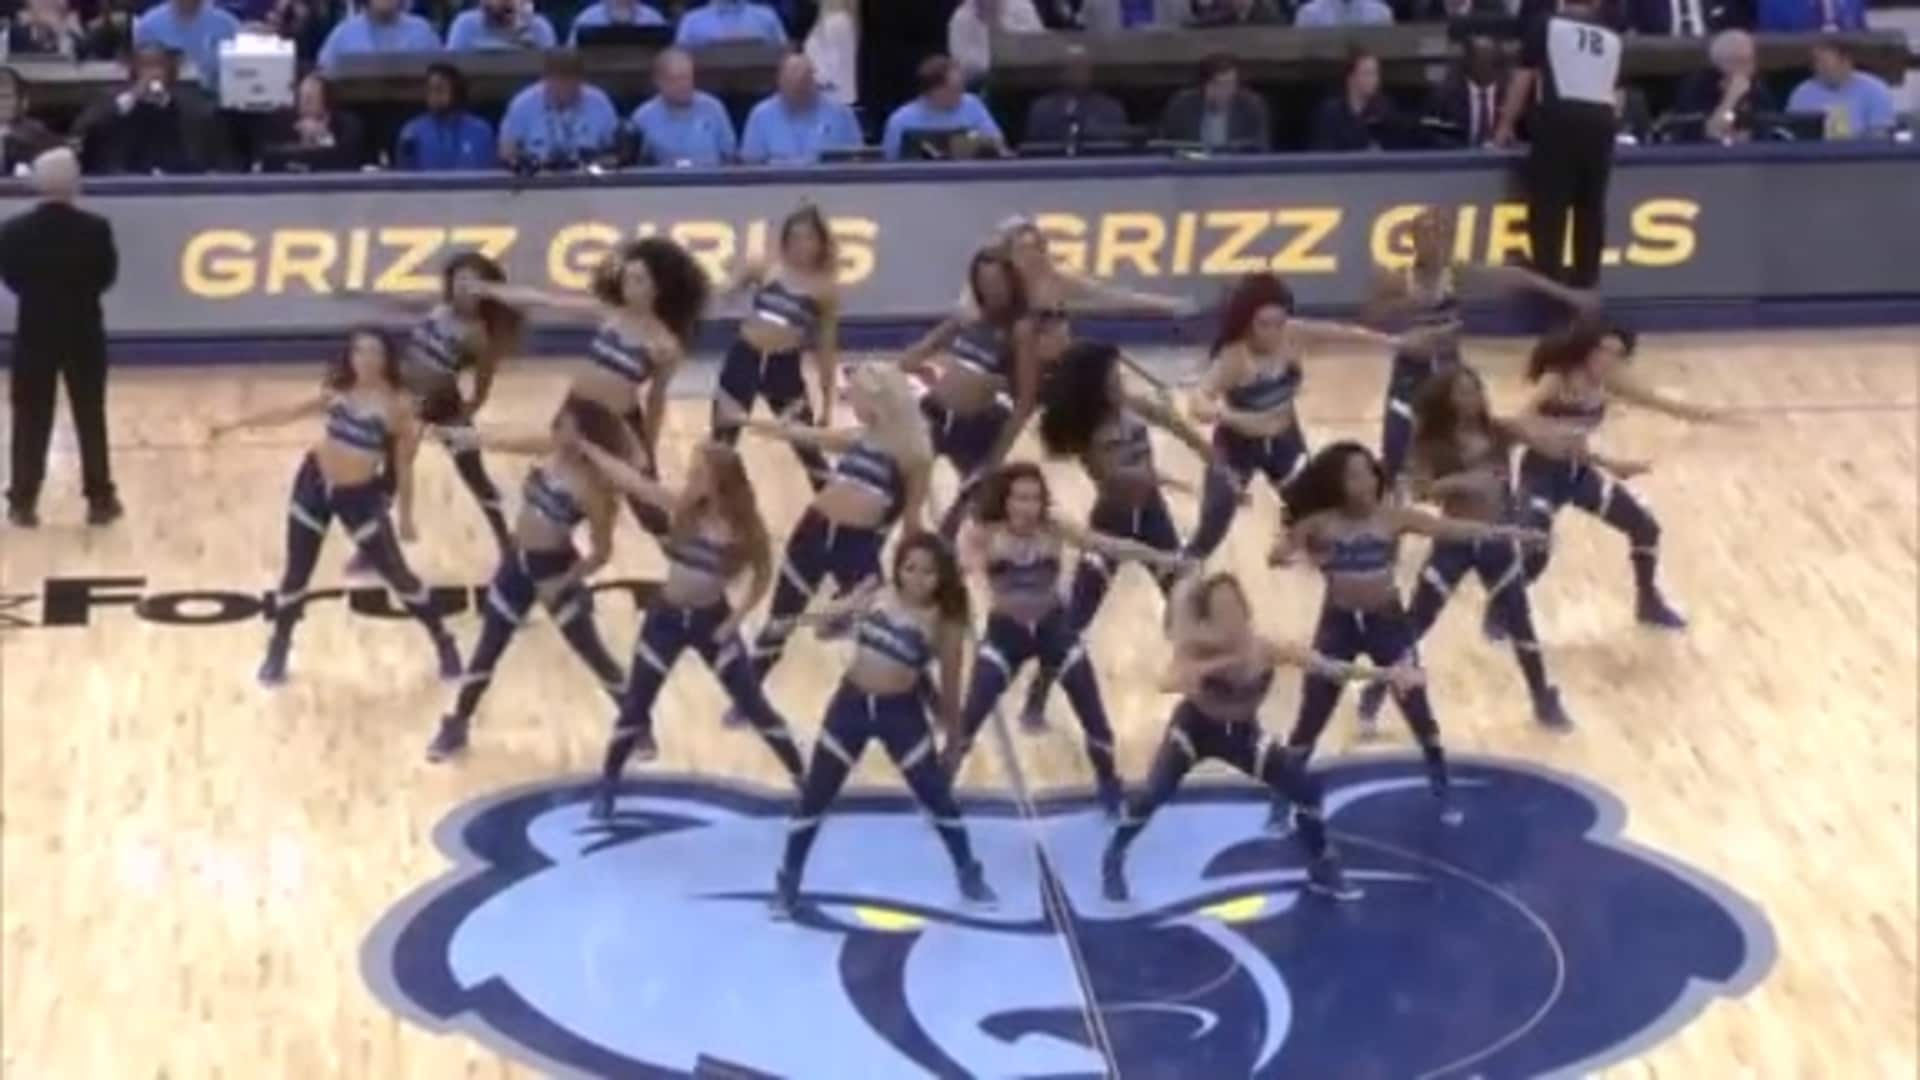 Grizz Girls 10.25.19